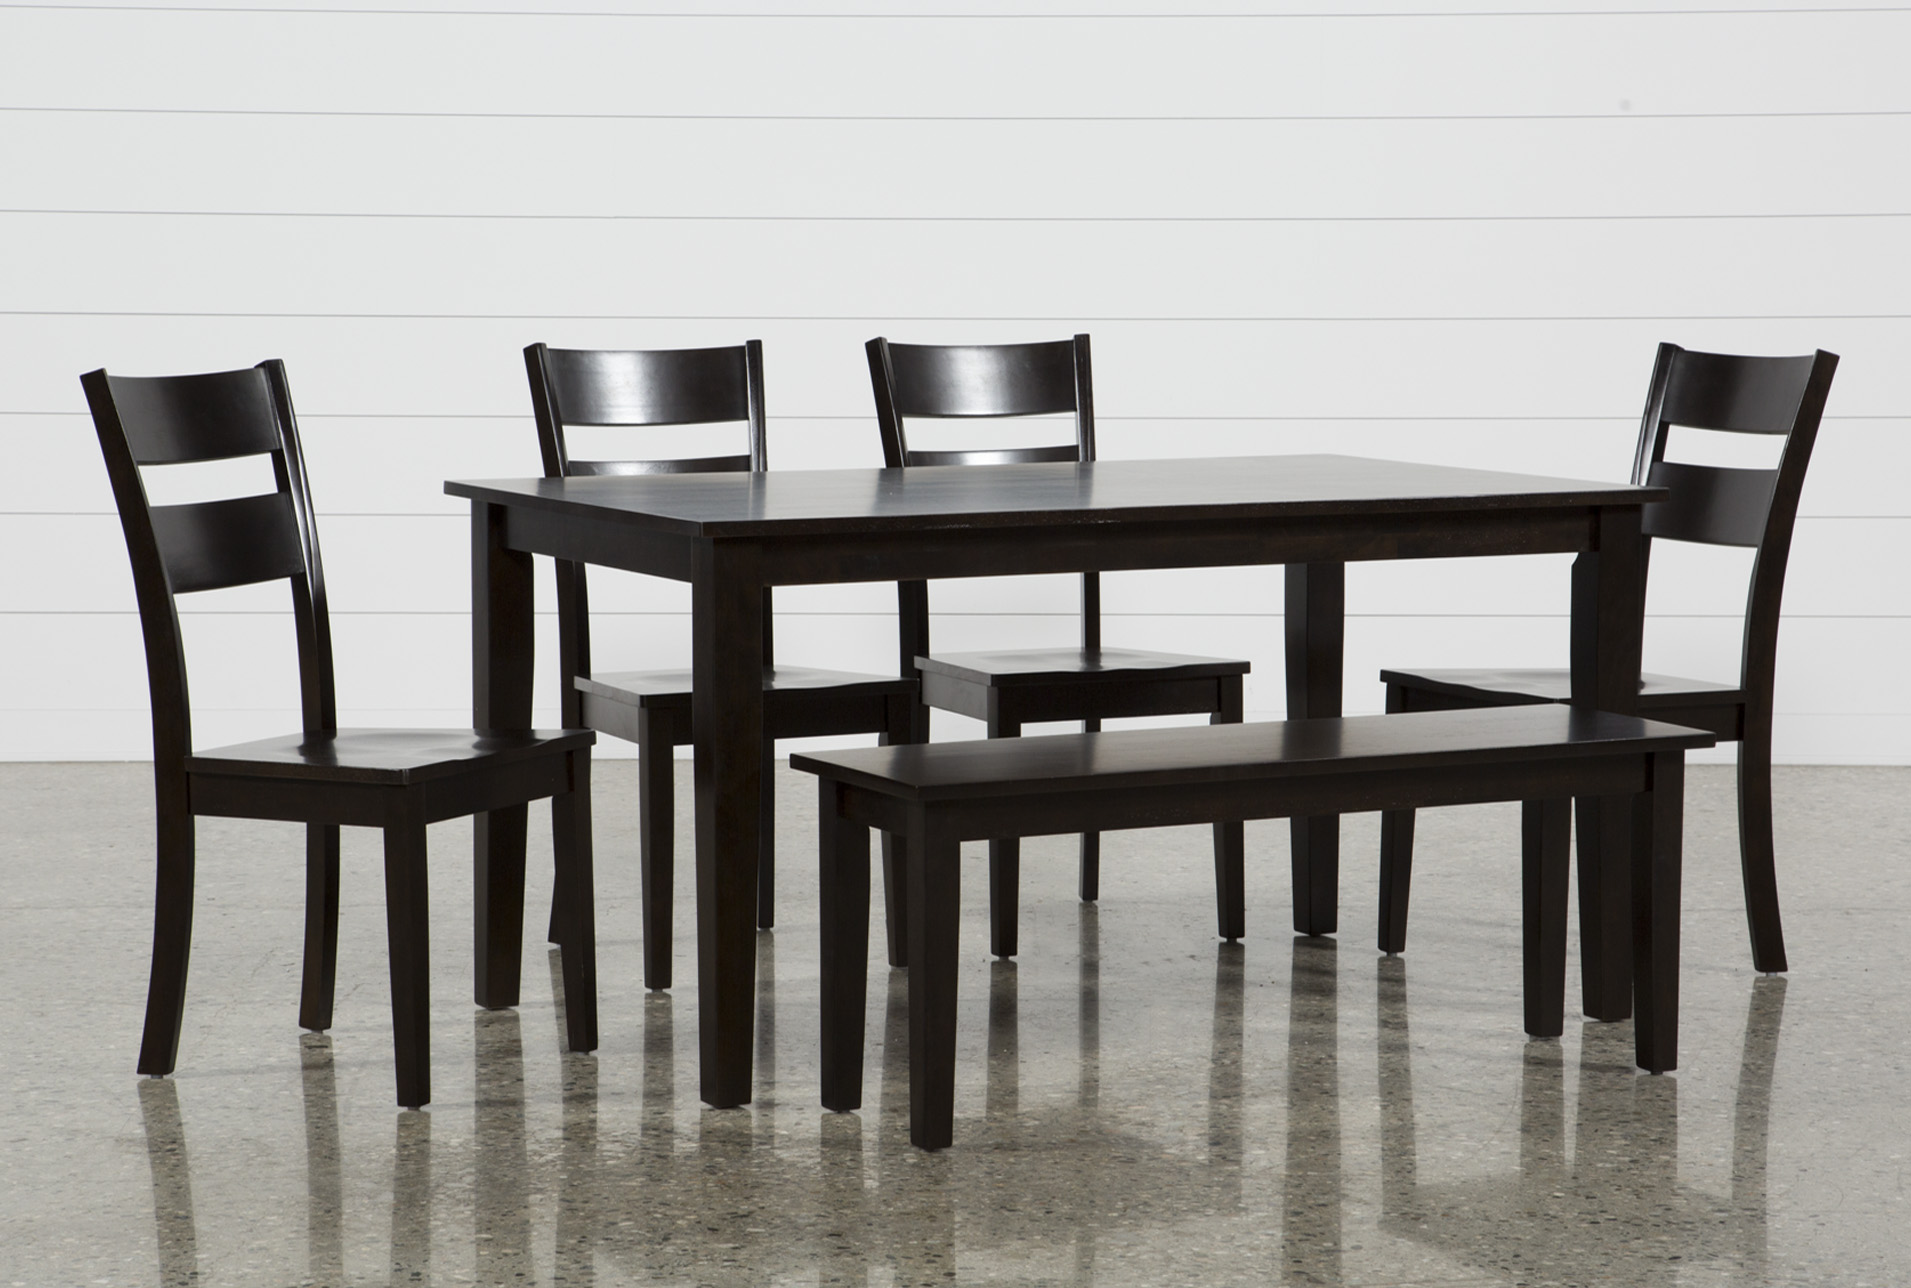 Merveilleux Lindy 6 Piece Espresso Rectangle Dining Set (Qty: 1) Has Been Successfully  Added To Your Cart.